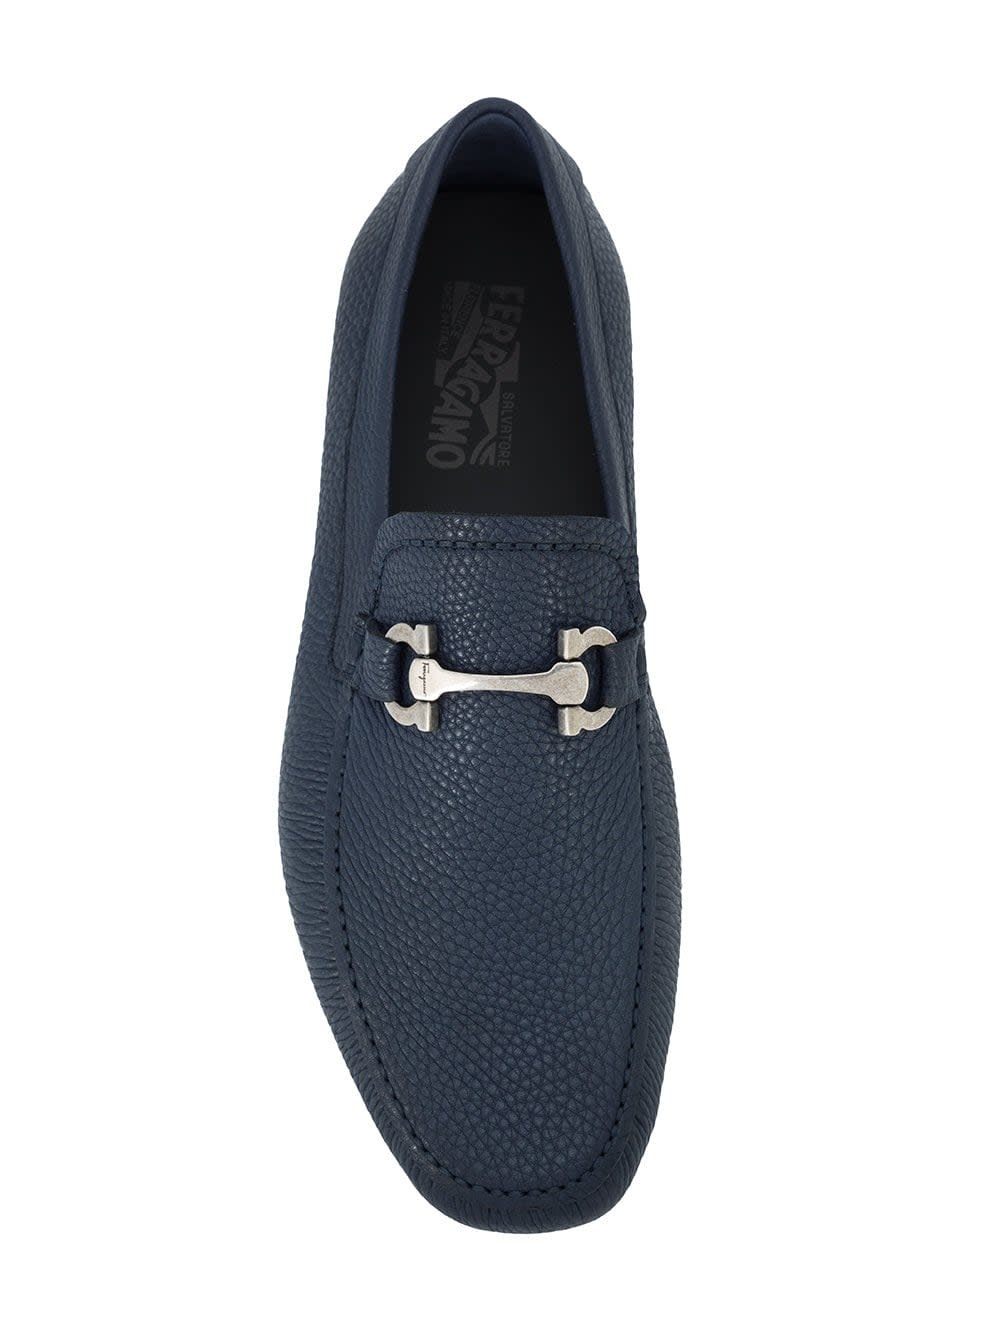 SALVATORE FERRAGAMO SALVATORE FERRAGAMO - LOAFER - CANCUN 2 - 688149